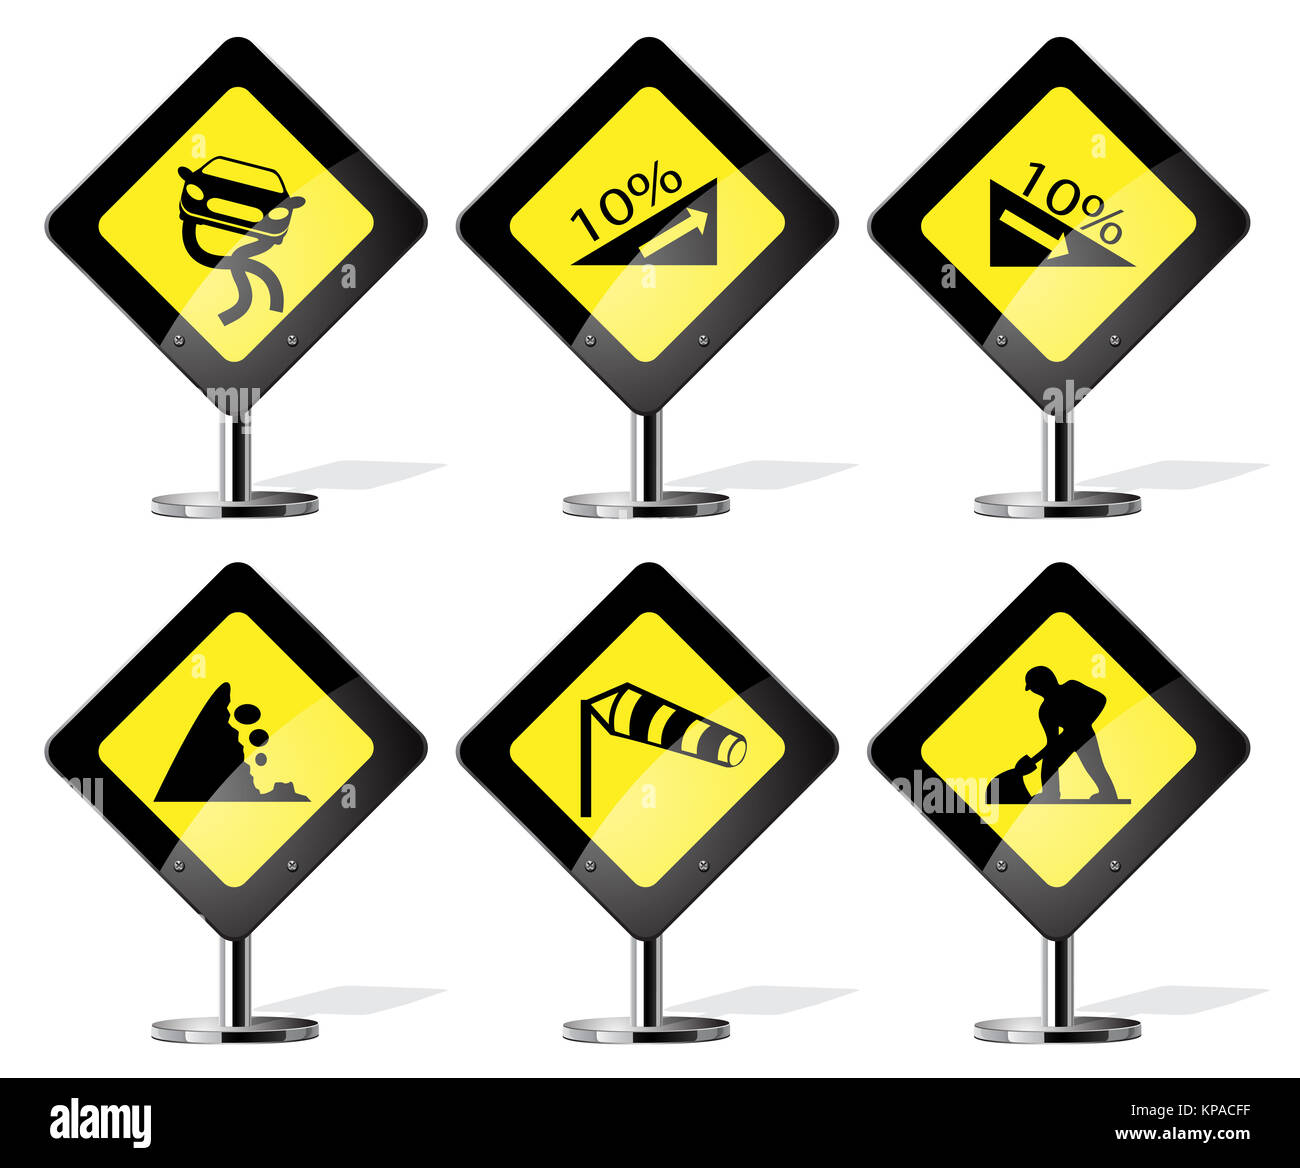 Road Sign Icons - Stock Image